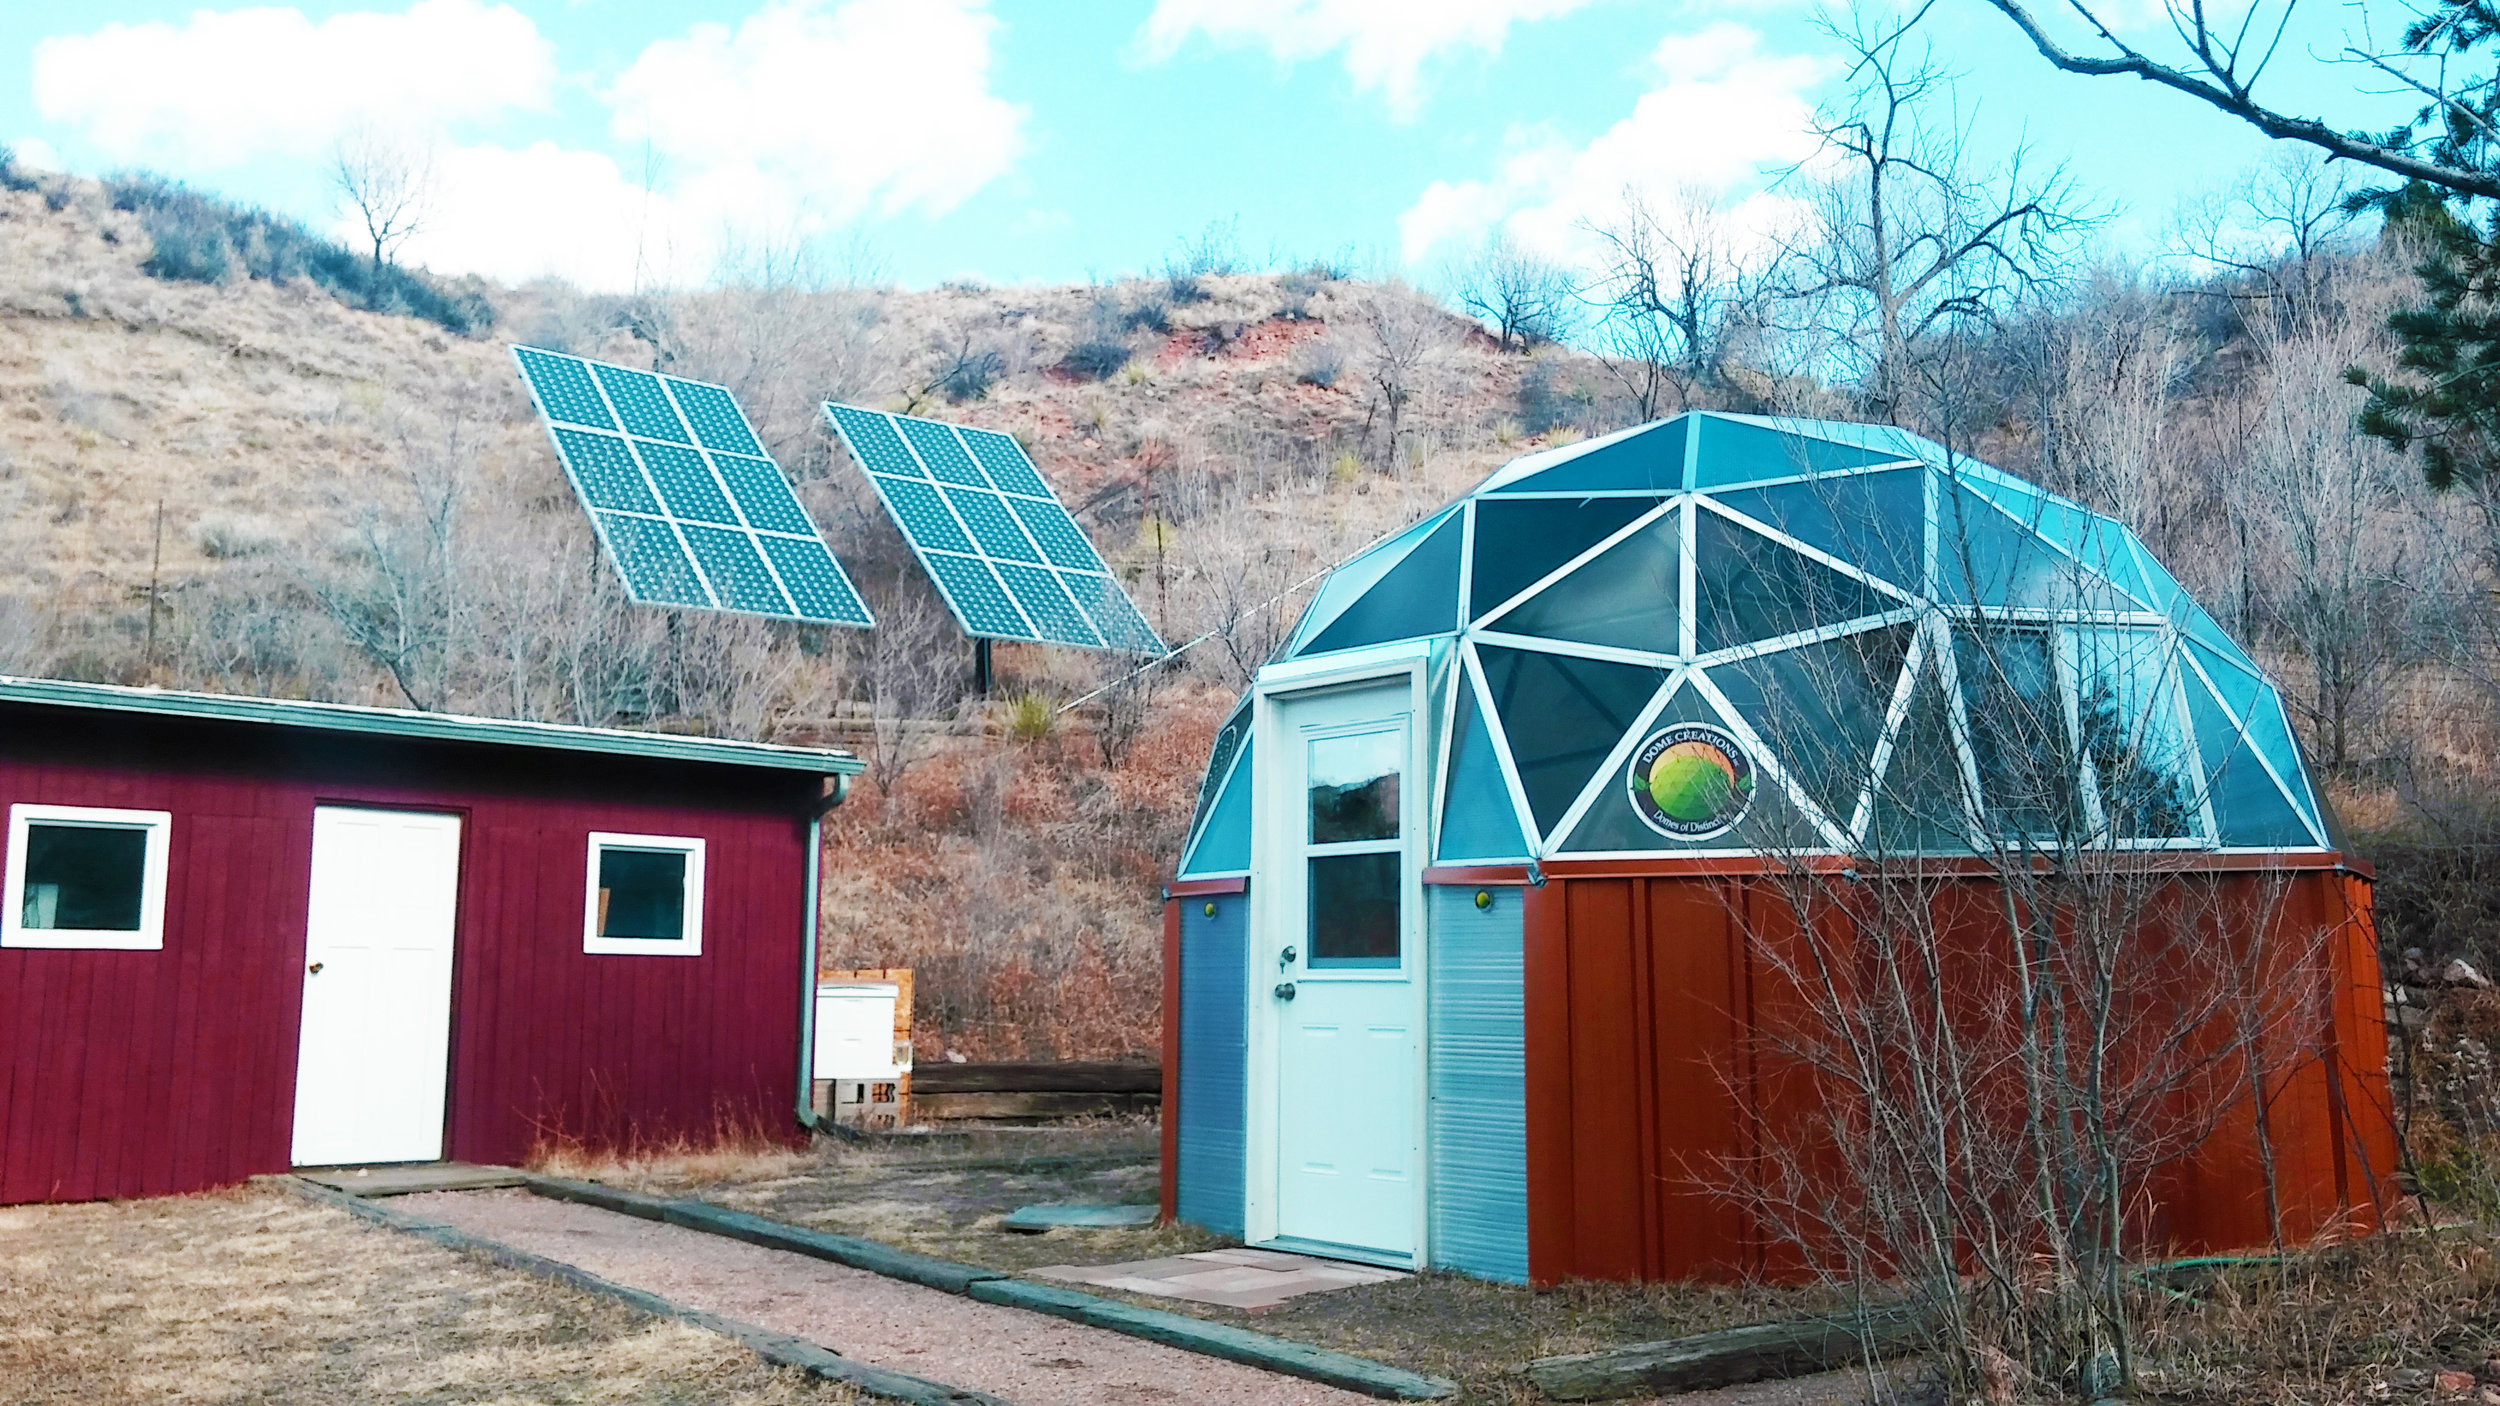 Sustainable - Geodesic domes are sustainable by nature, but Dome Creations LLC takes pride in furthering its ecological mission by using recycled materials because we care about the earth! Want to learn more about how we reduce our carbon footprint?